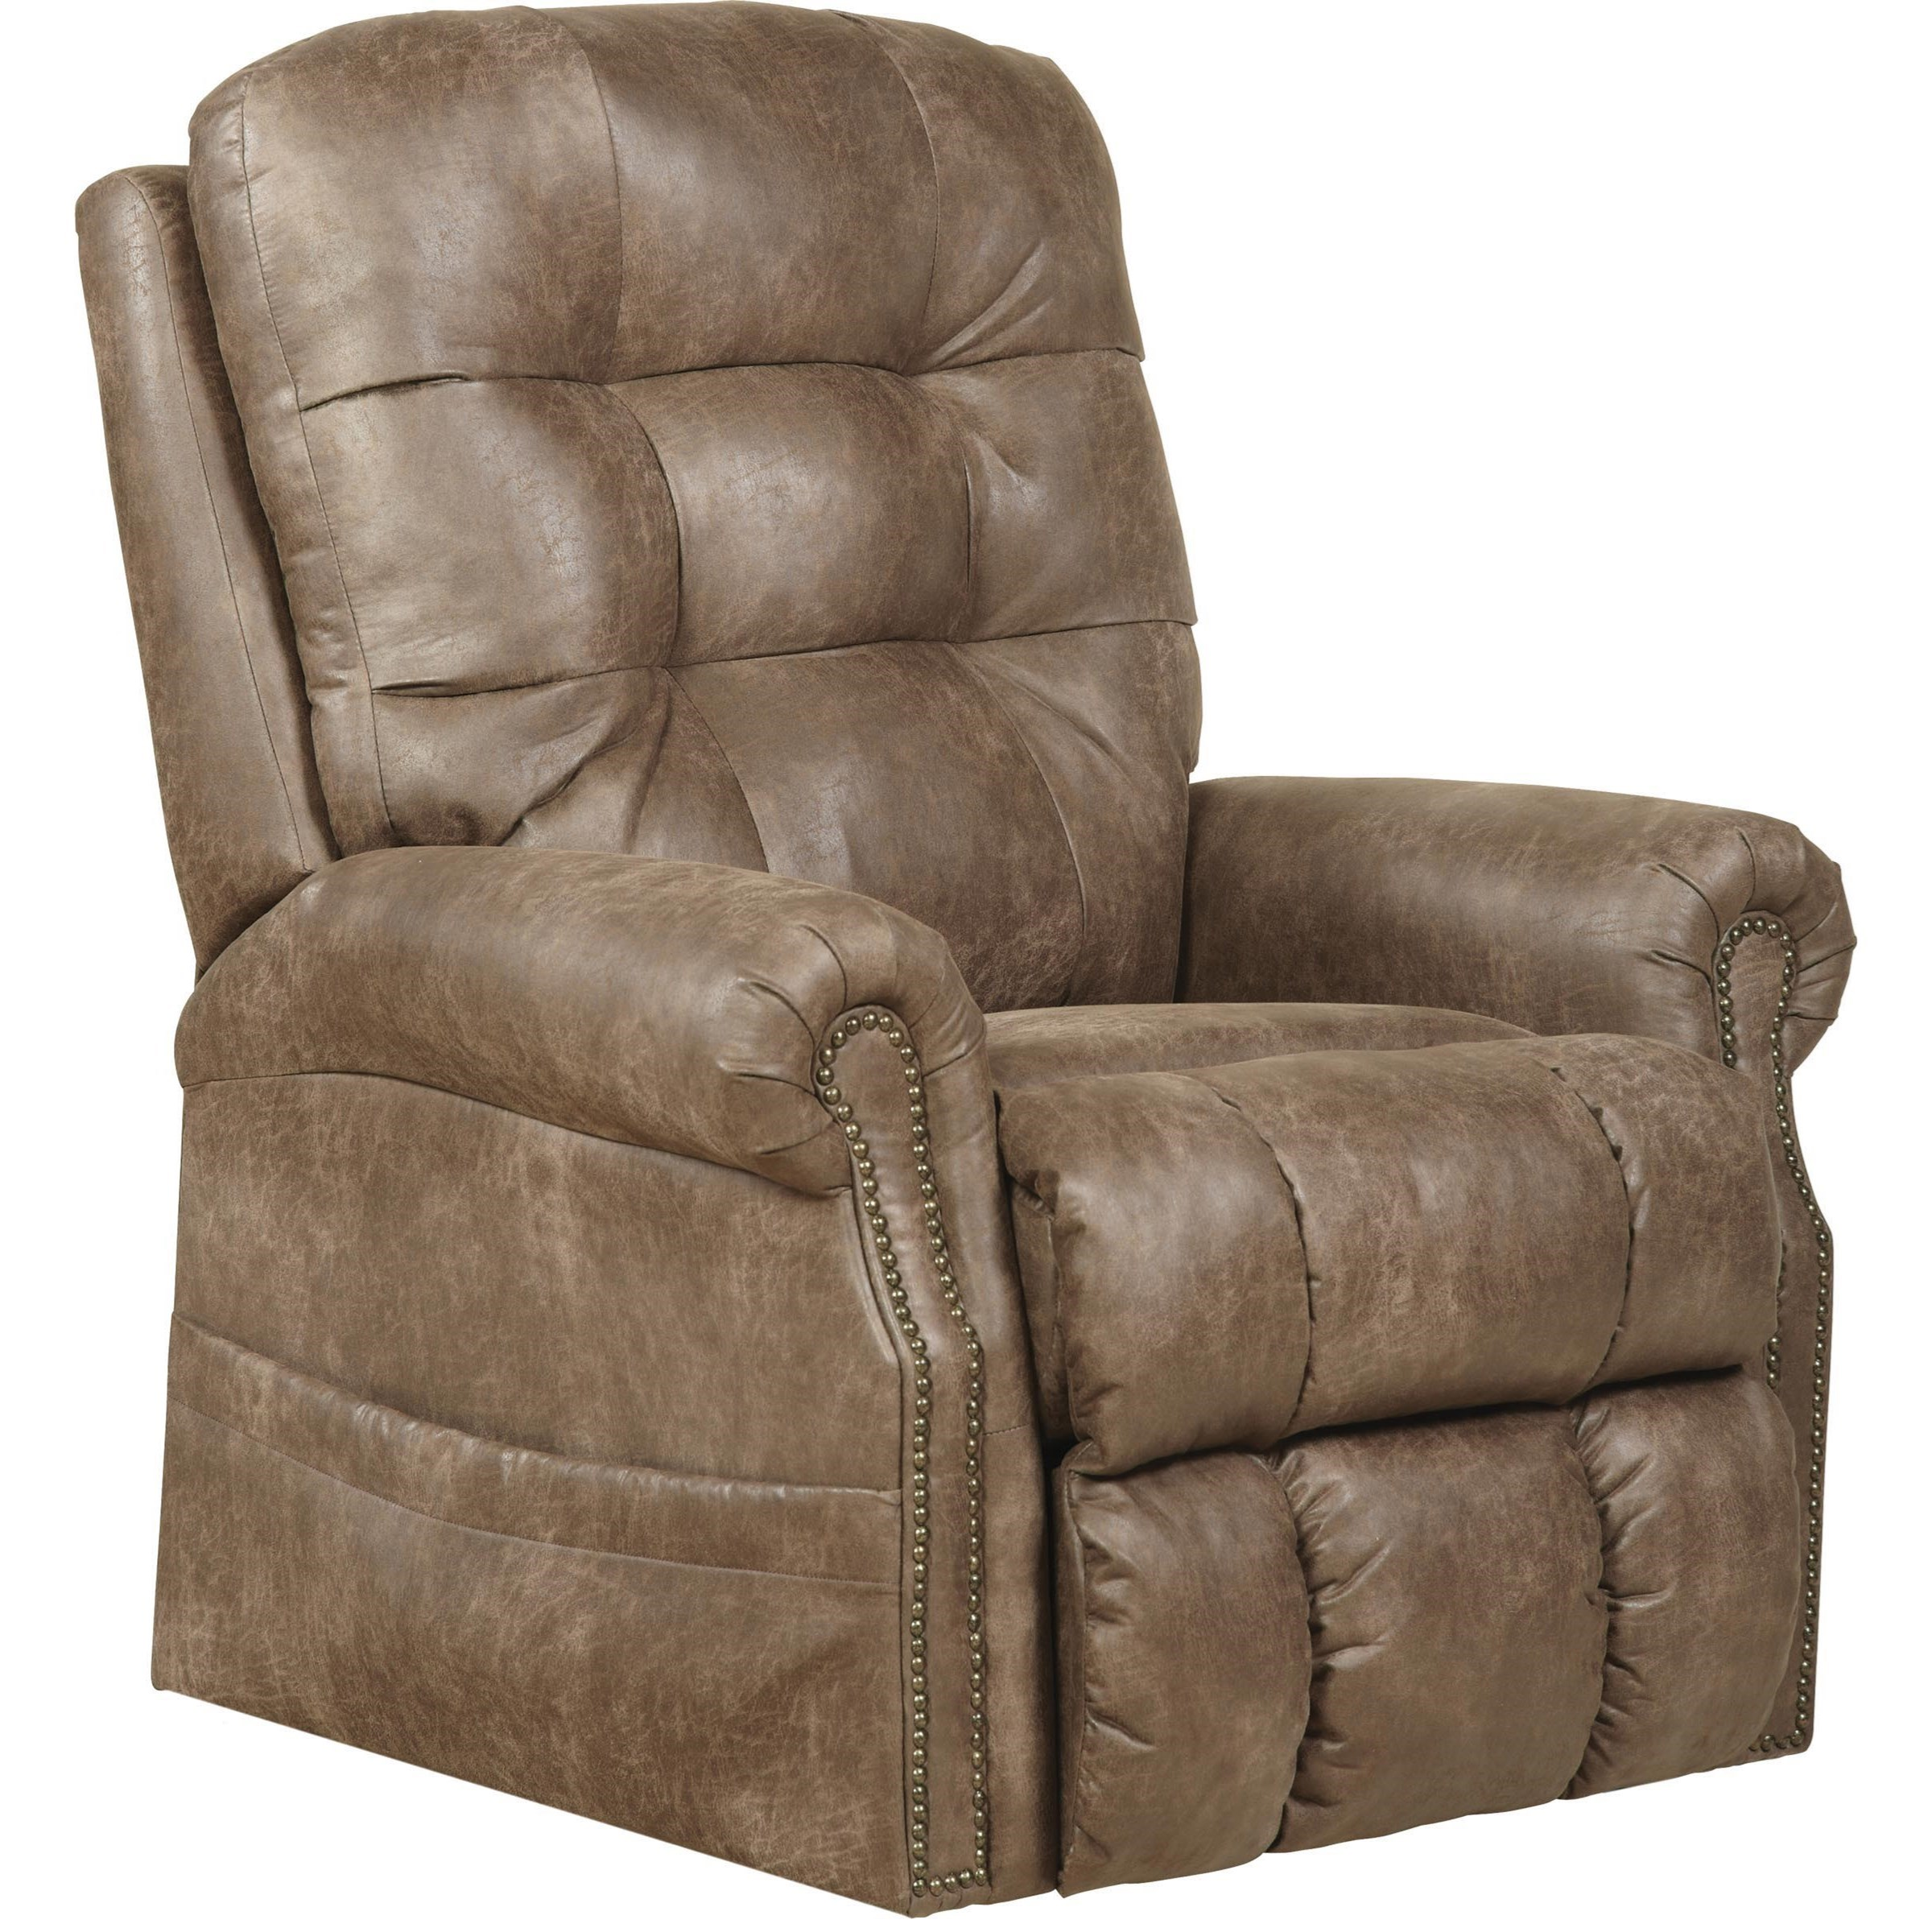 Catnapper Motion Chairs and Recliners Ramsey Lift Chair